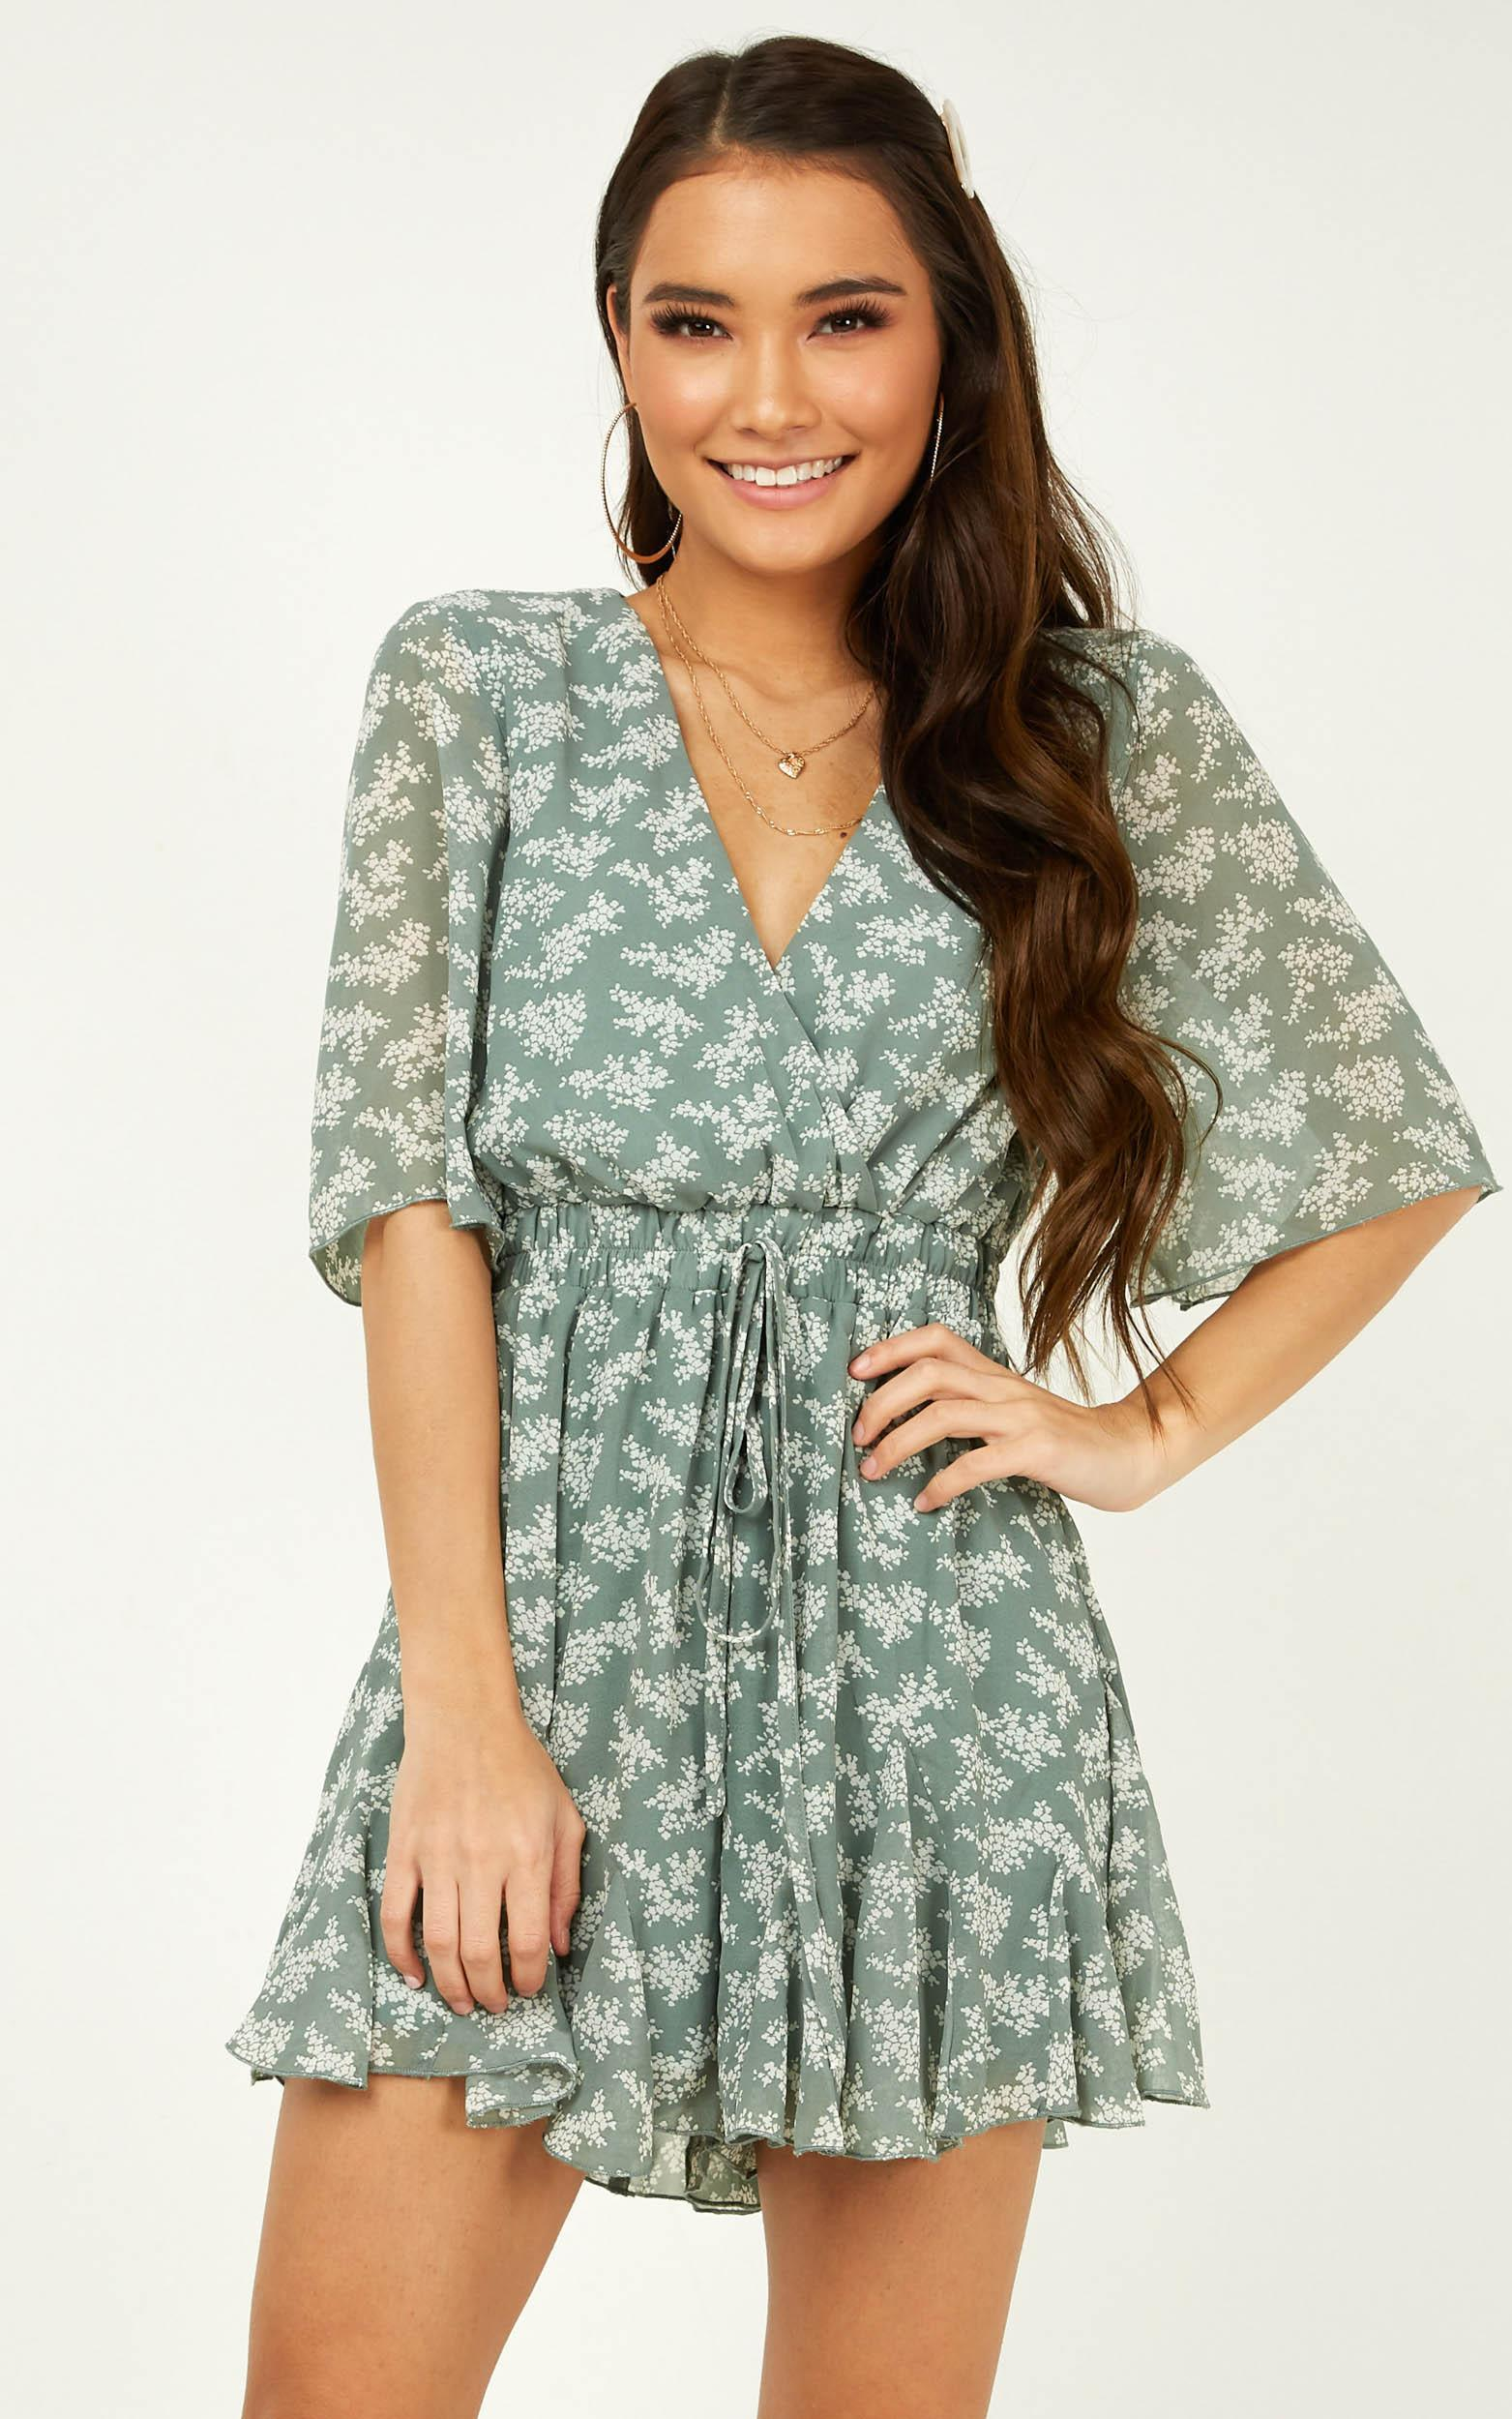 New Memories Playsuit in teal floral - 20 (XXXXL), Green, hi-res image number null